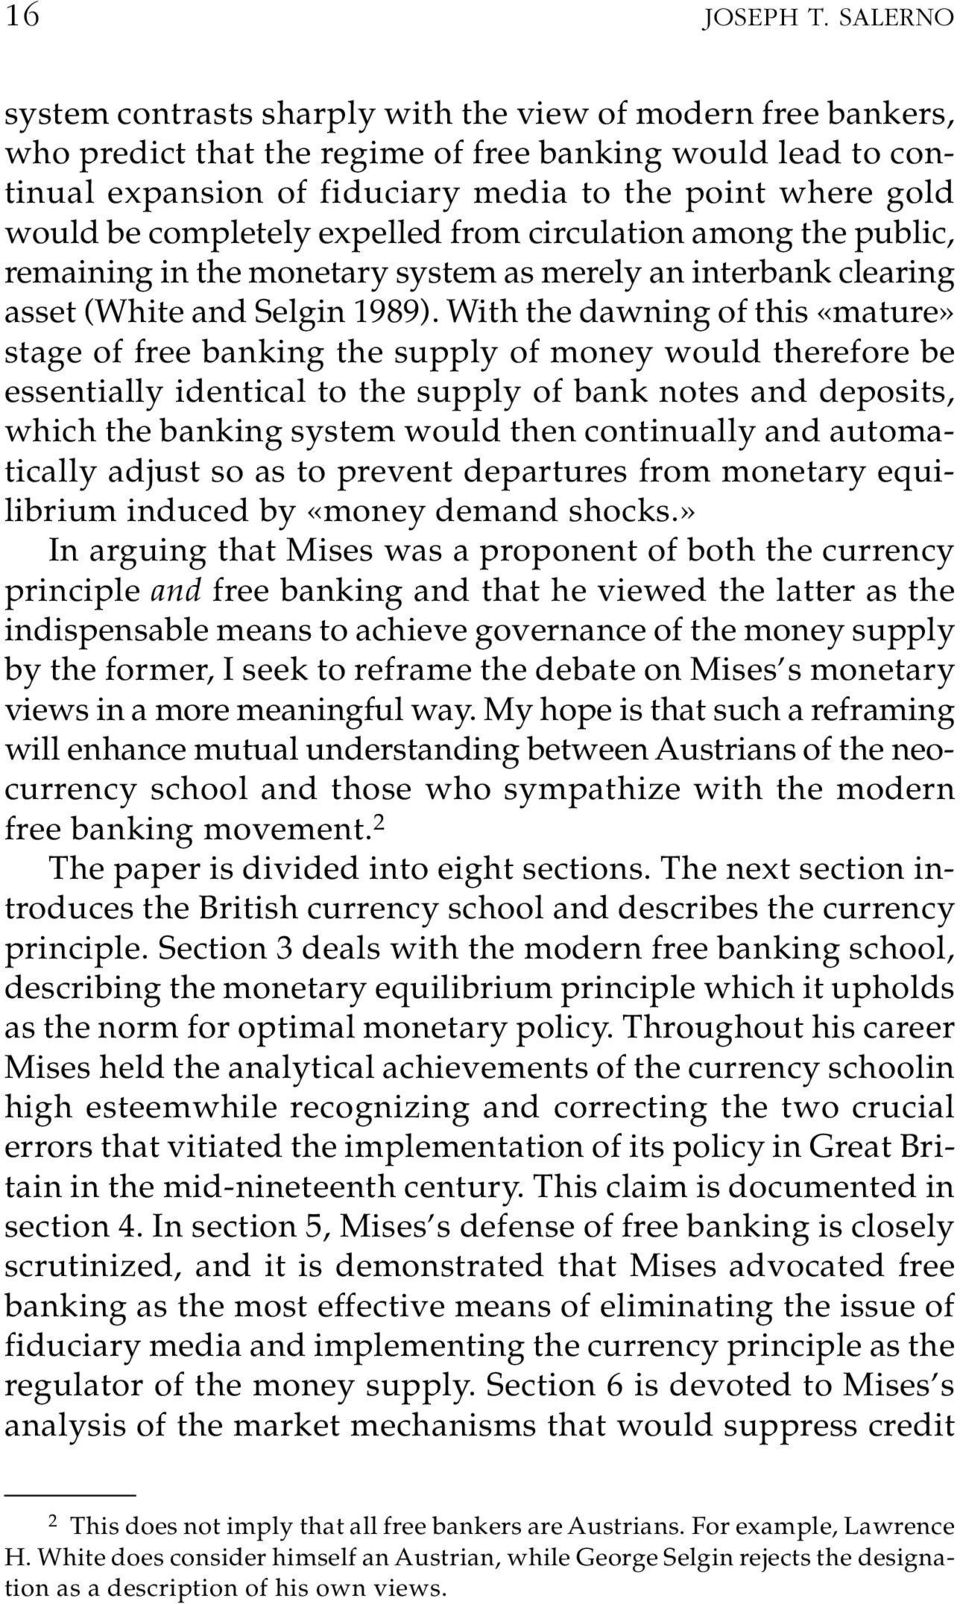 would be completely expelled from circulation among the public, remaining in the monetary system as merely an interbank clearing asset (White and Selgin 1989).